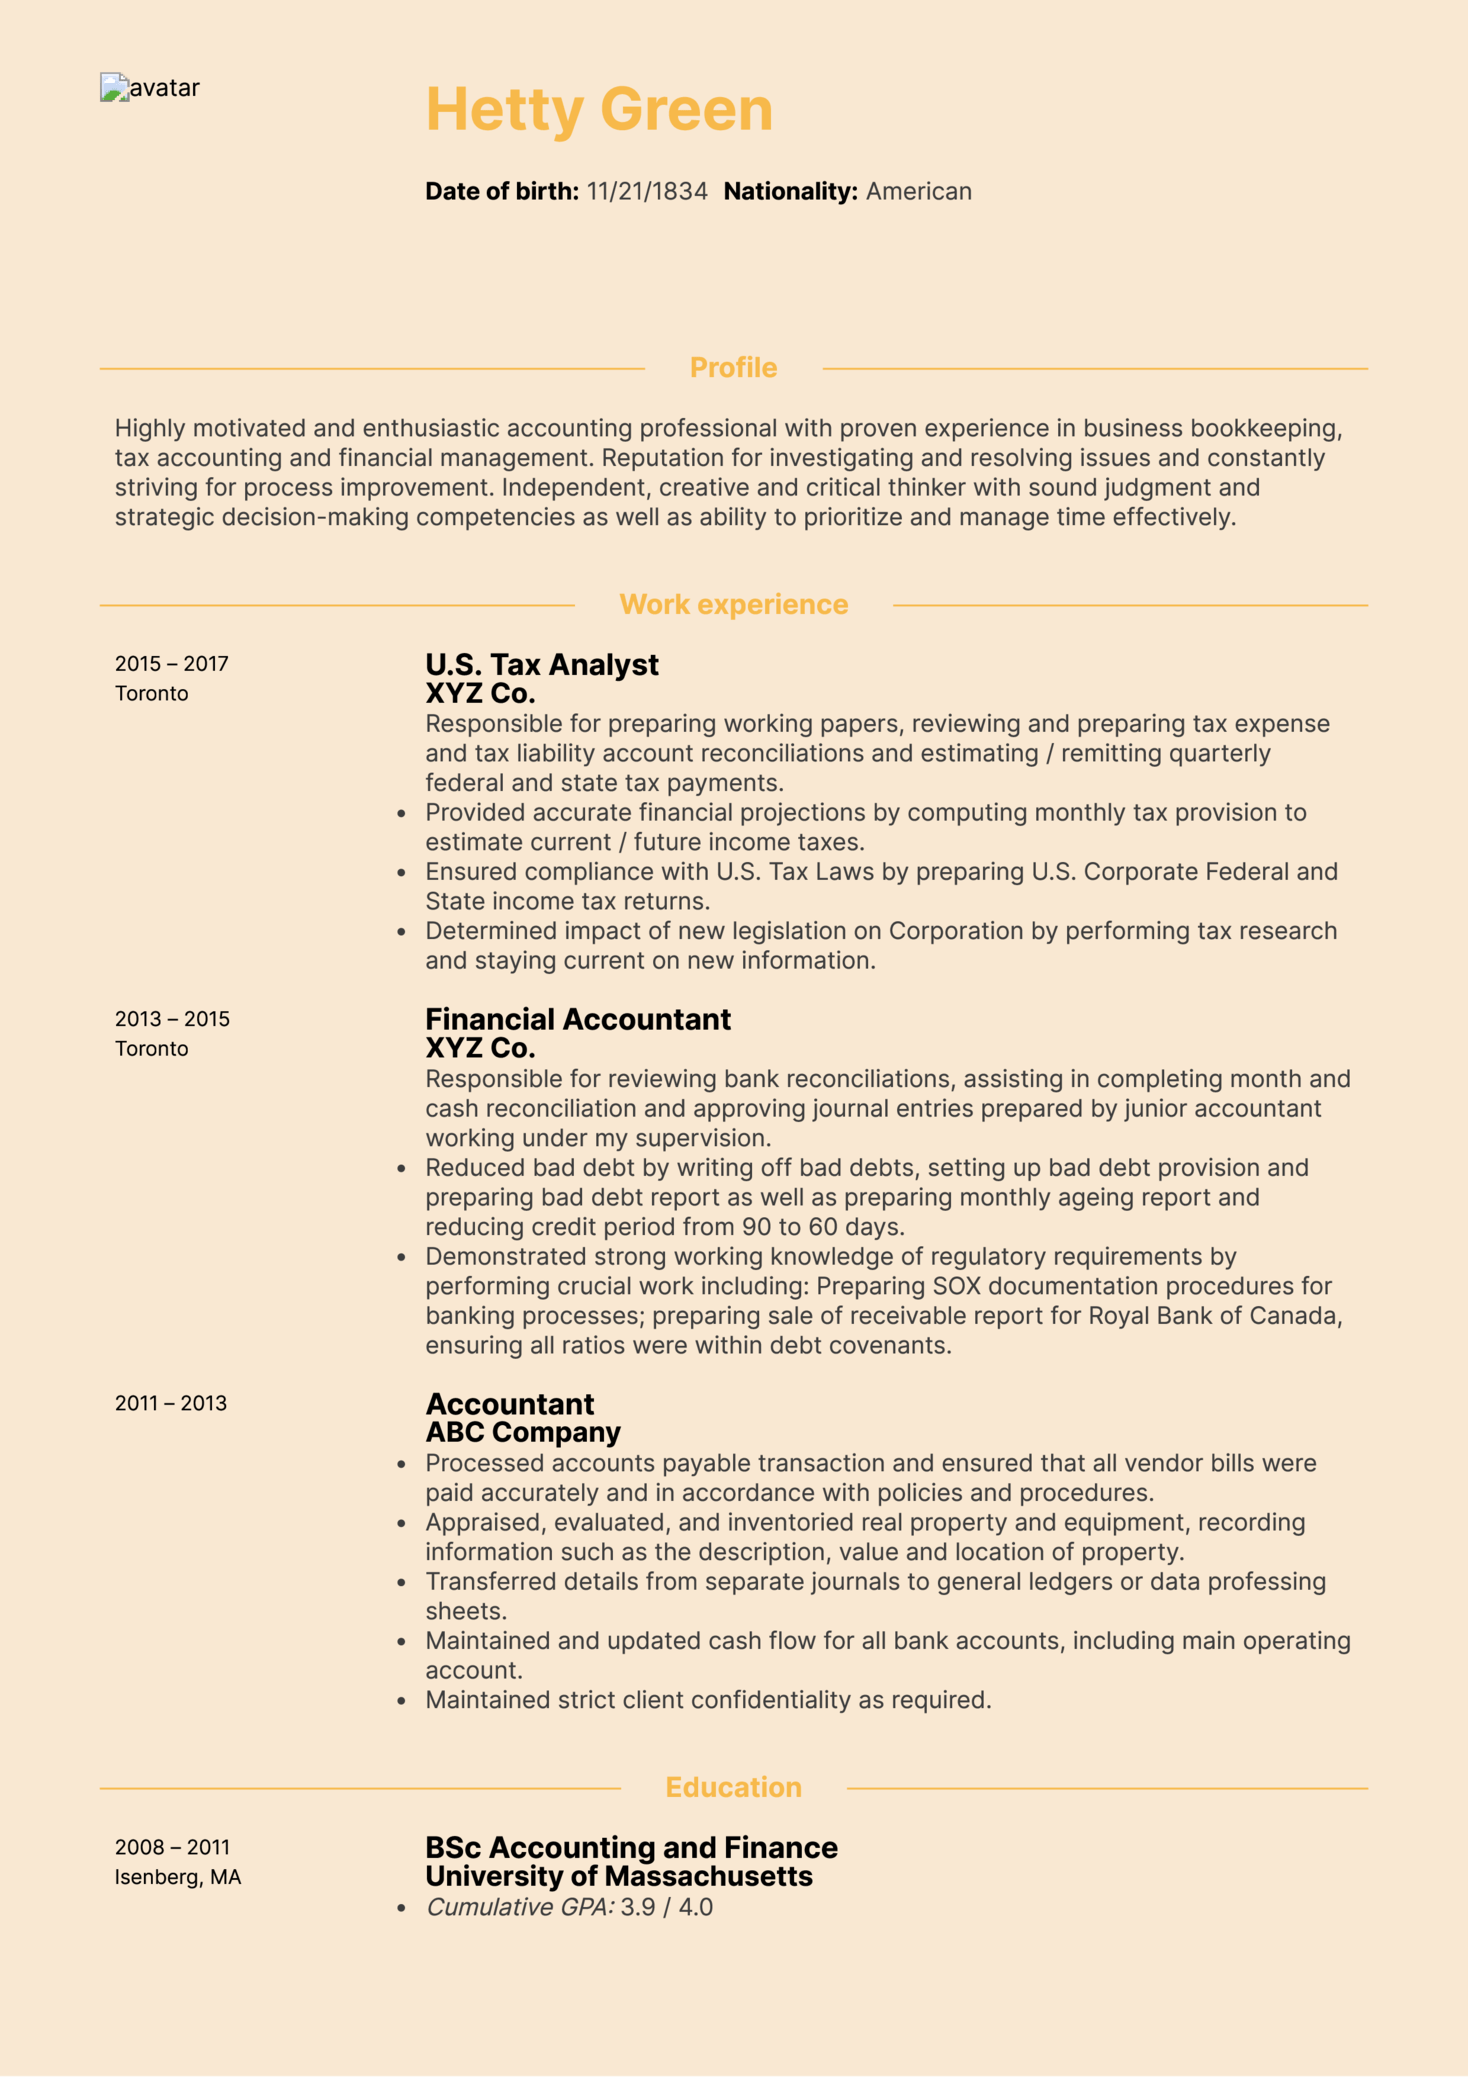 cpa tax accountant resume sample - Accountant Resume